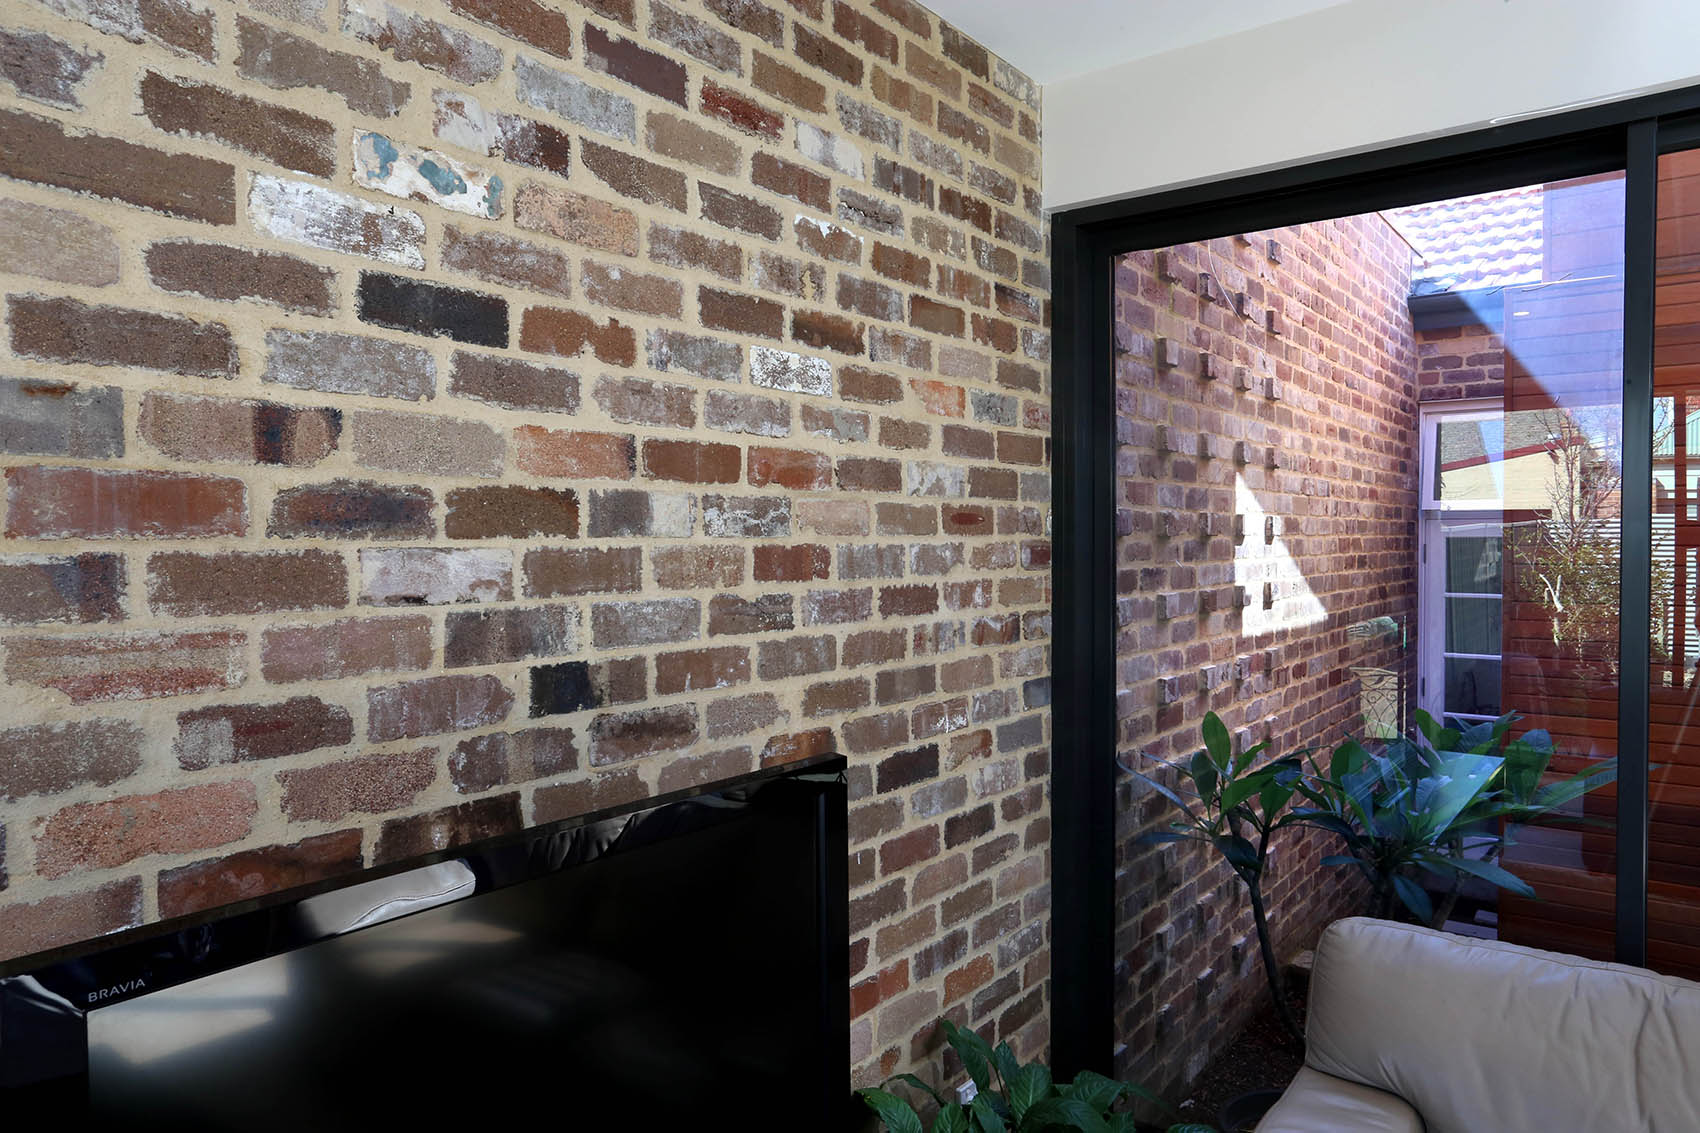 Leichhardt award winning victorian residence genuine building services - How to build an alley out of reused bricks ...